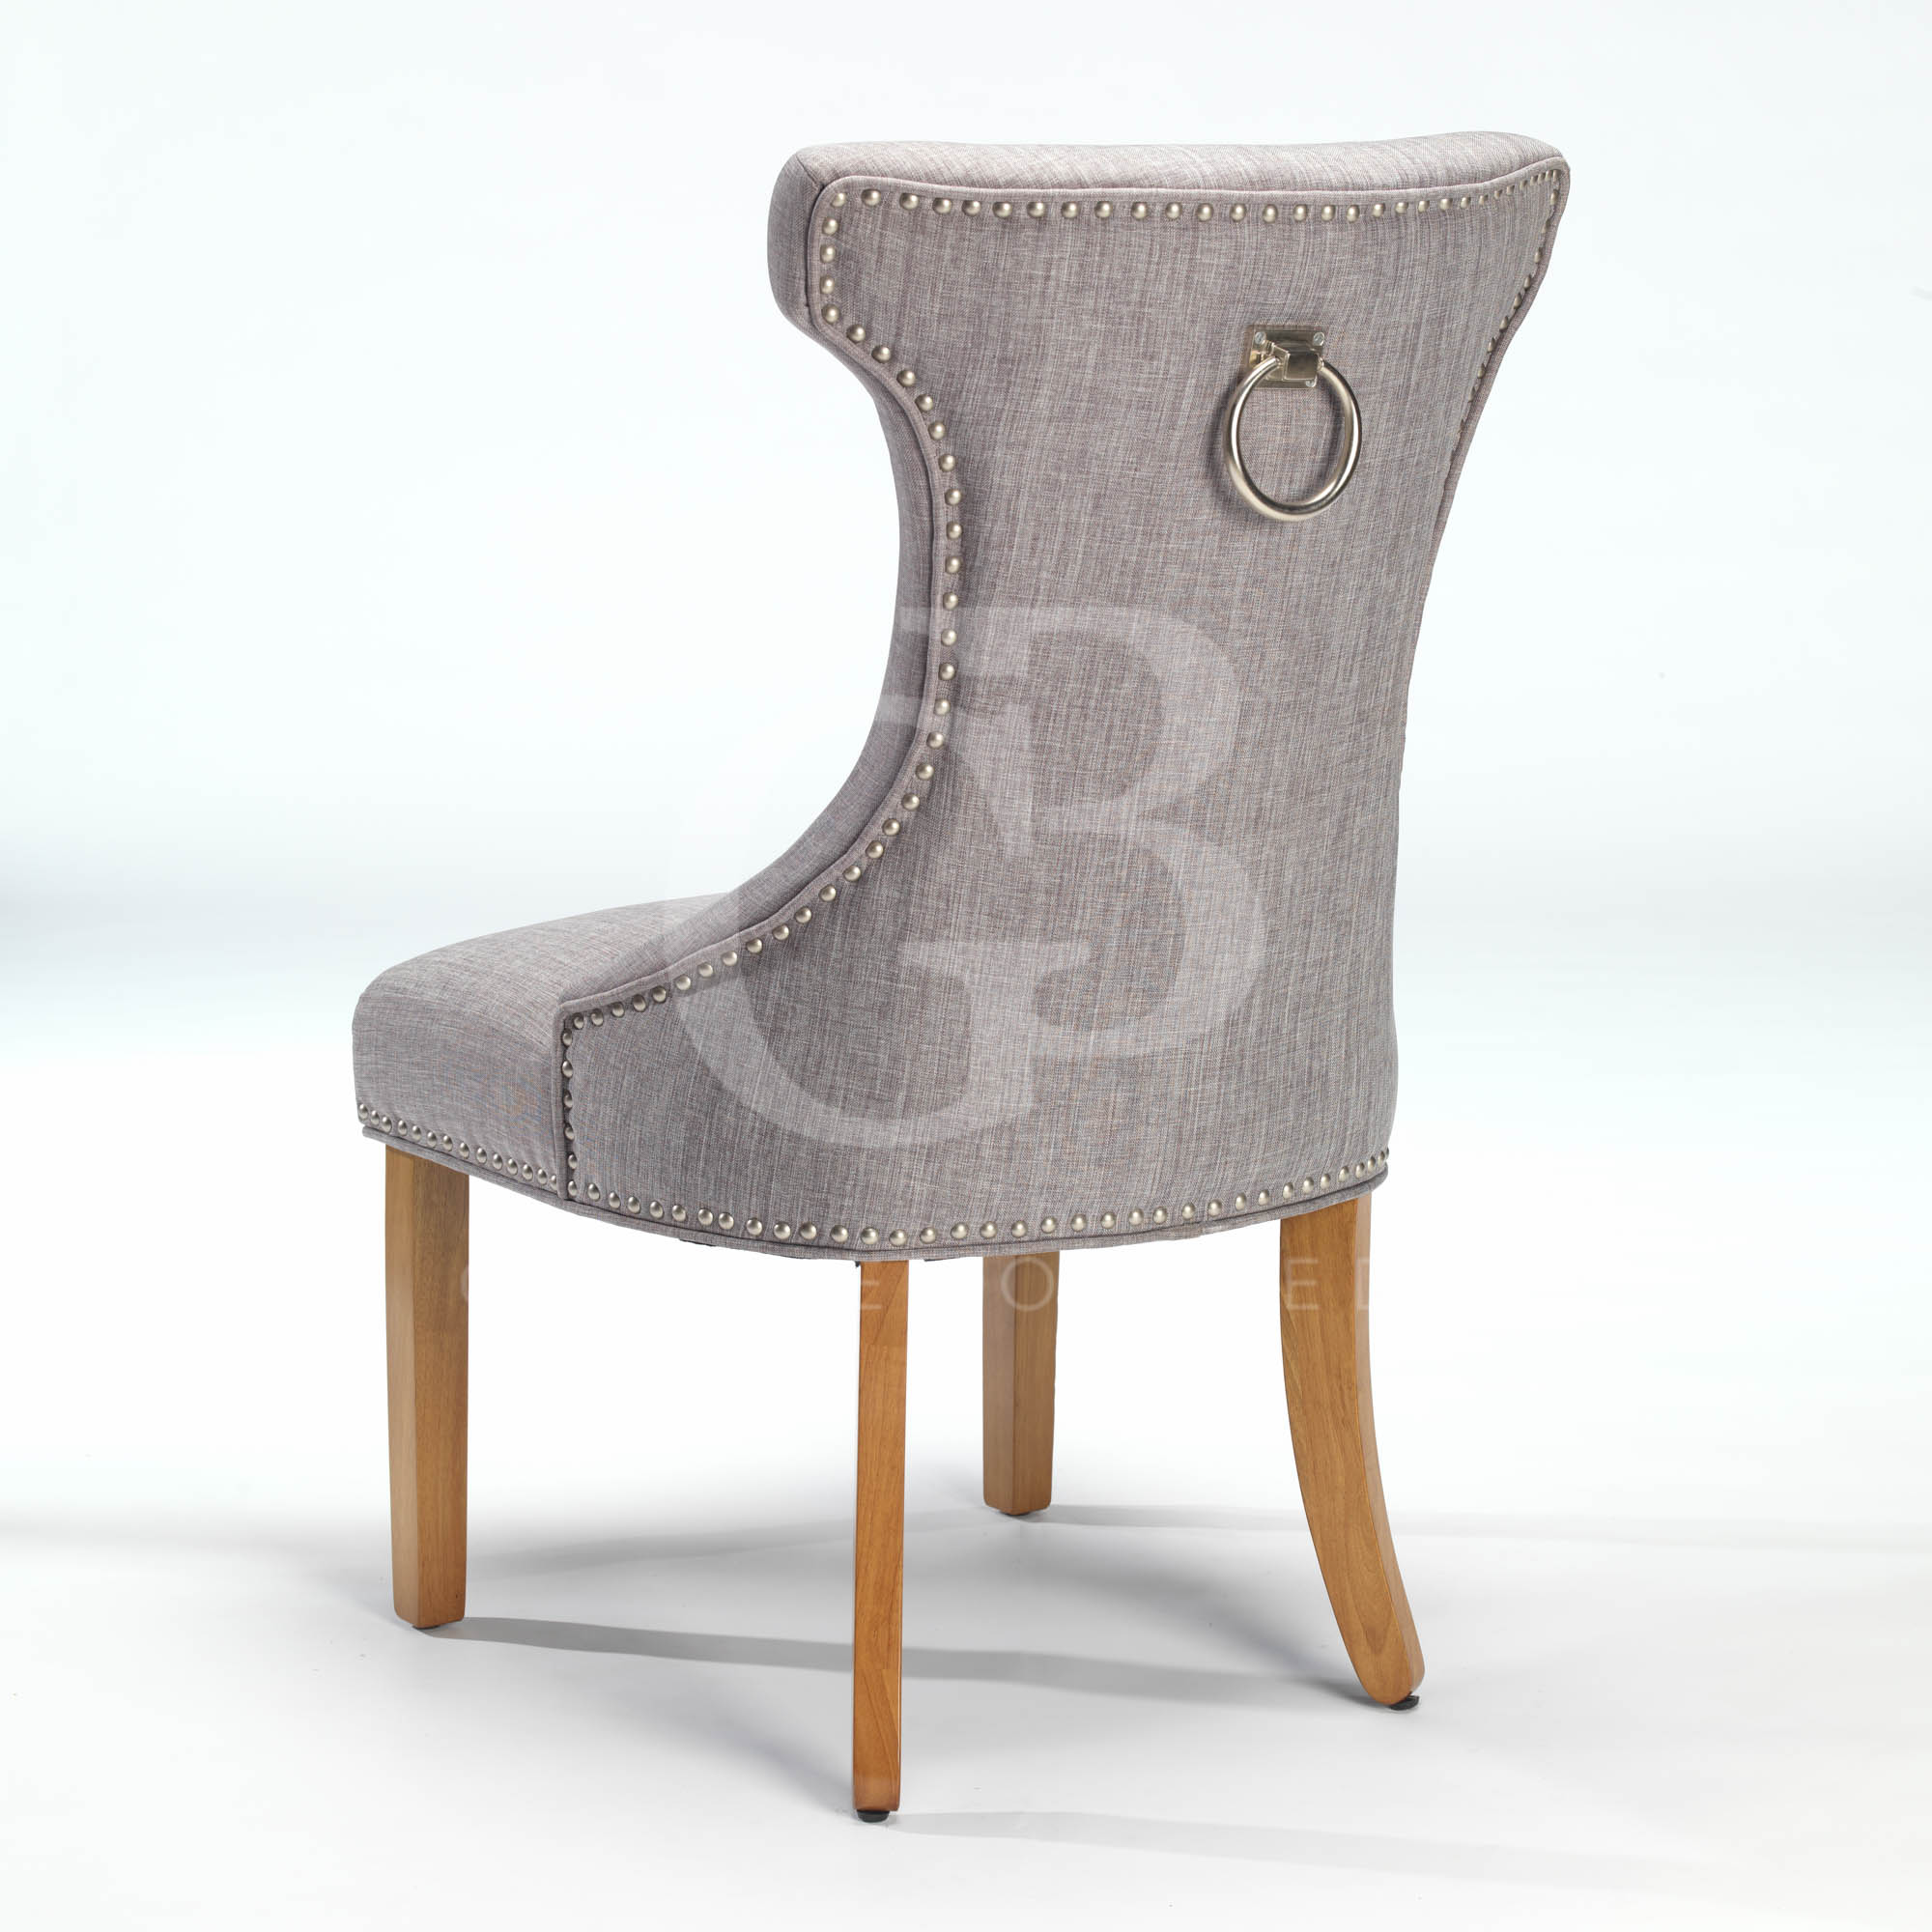 New upholstered wing back dining chair with nickel studs for Upholstered studded dining chairs